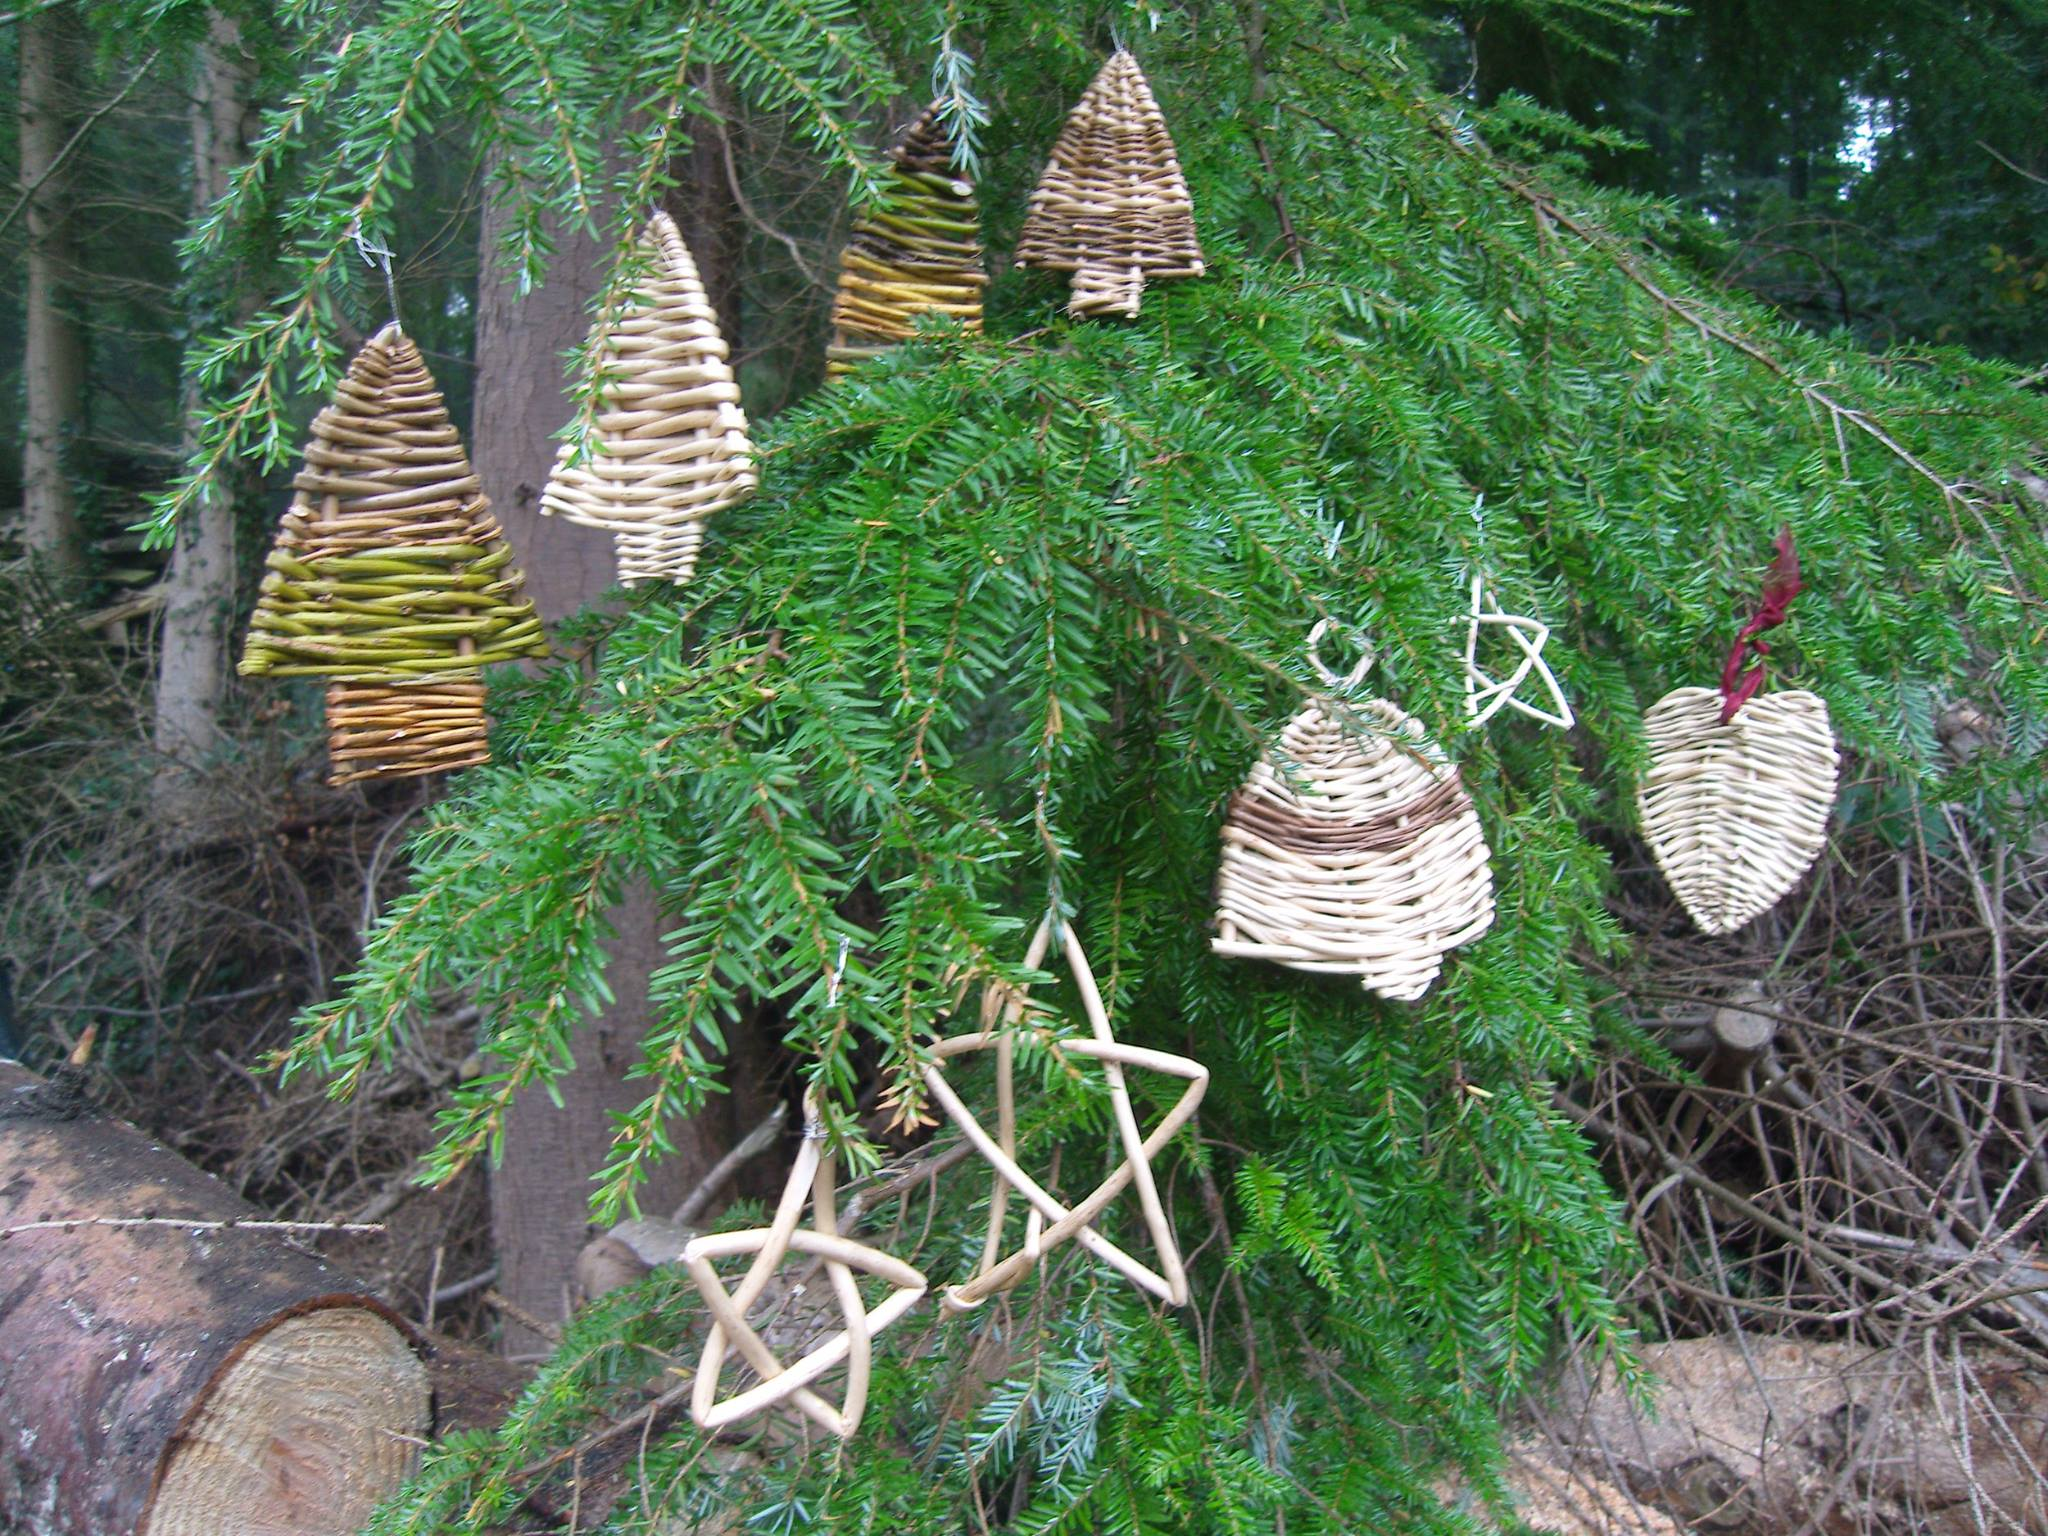 Wicker Christmas decorations